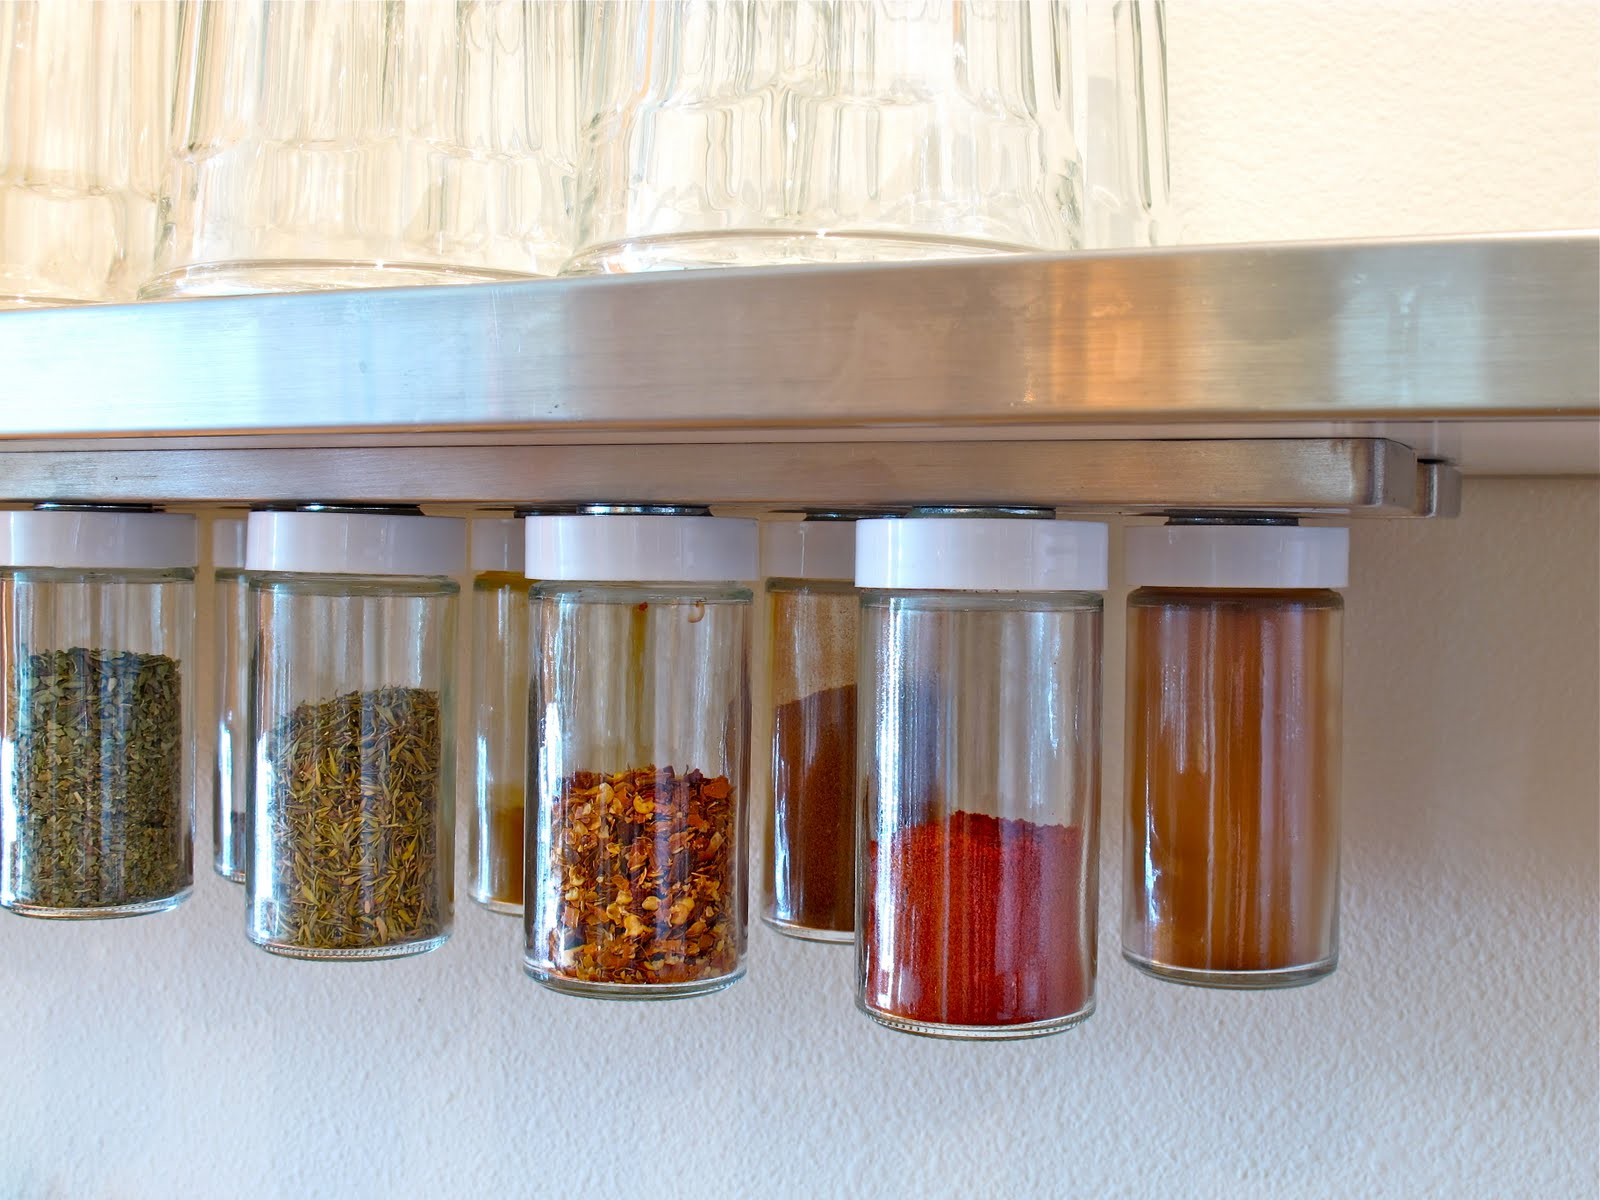 Blukatkraft diy hanging magnetic spice rack storage Diy under counter storage